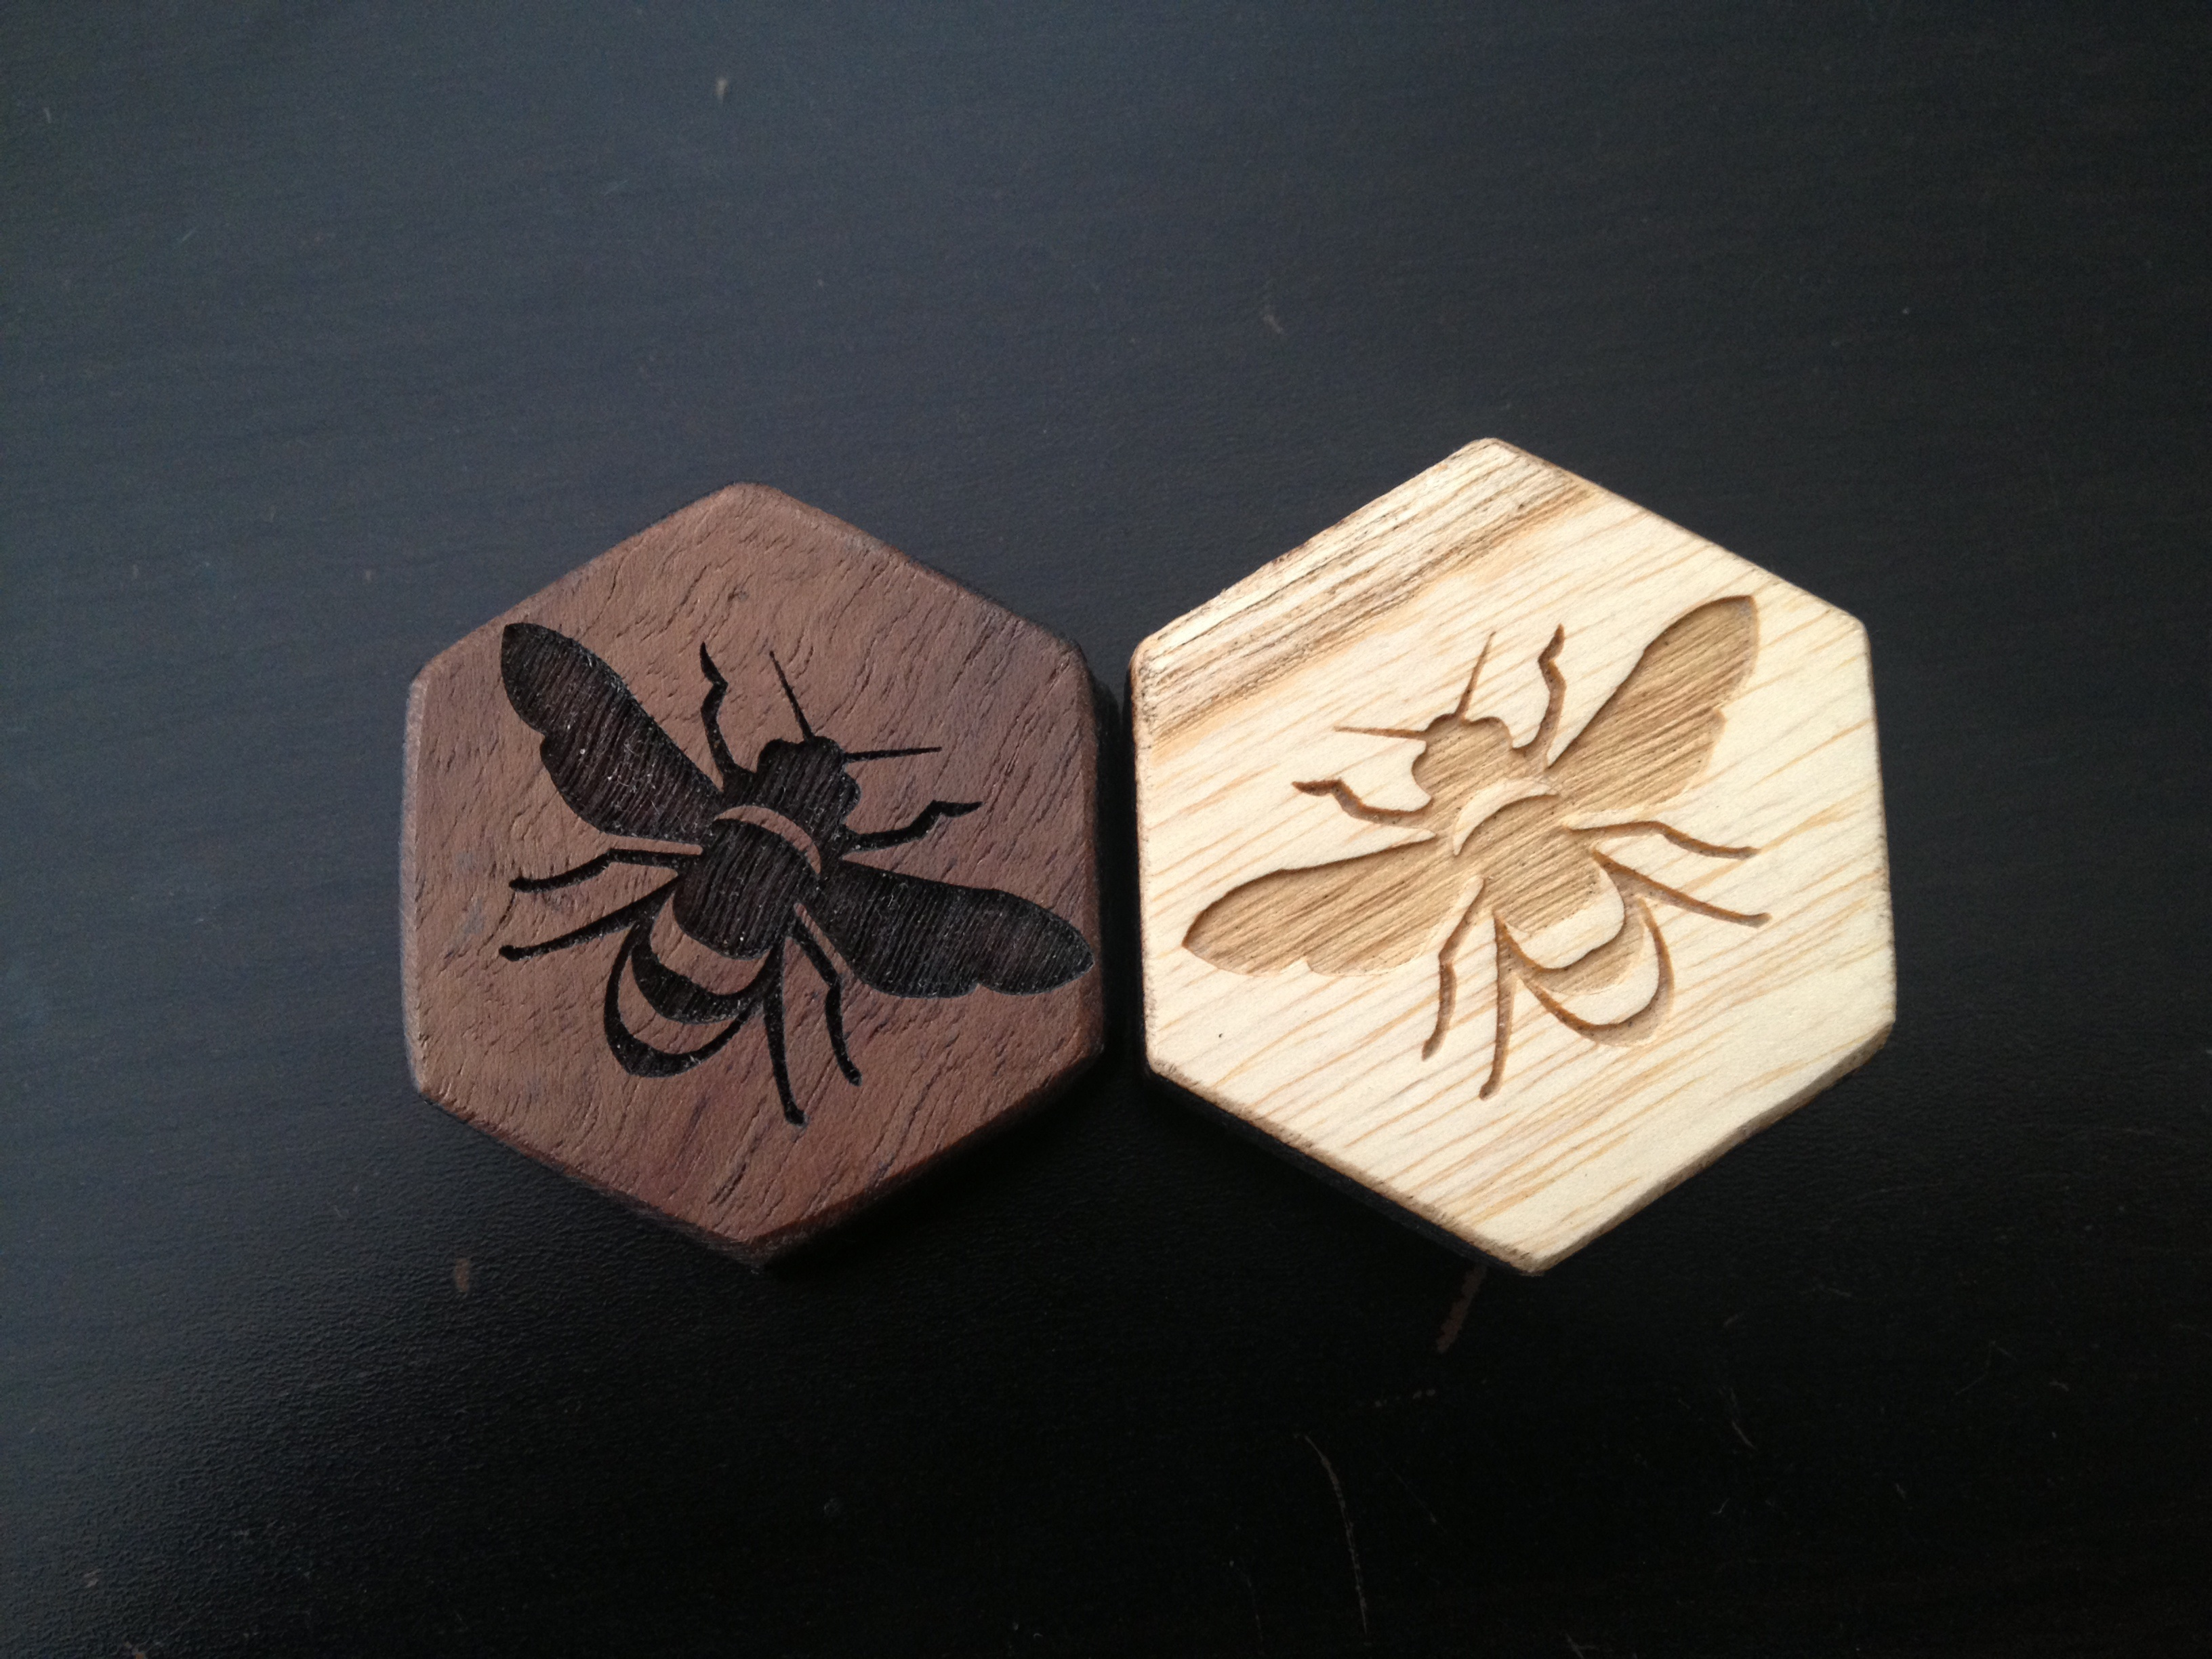 Custom wood and metal Hive set (boardgame)